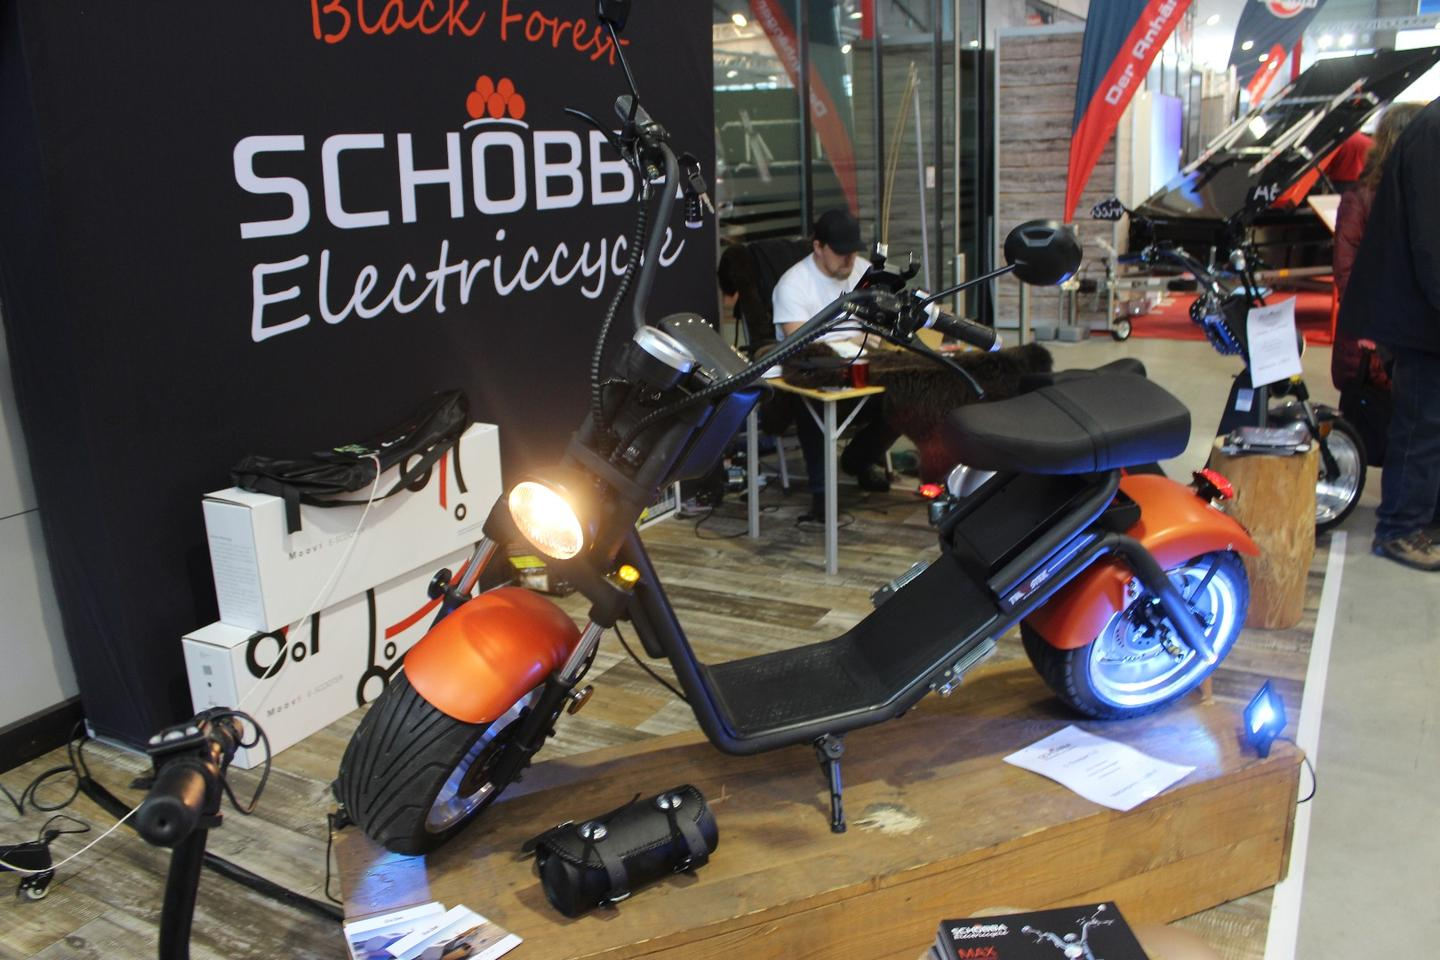 The Schobba 2.0 has a 60 km all electric range and a top speed of 40 km/h